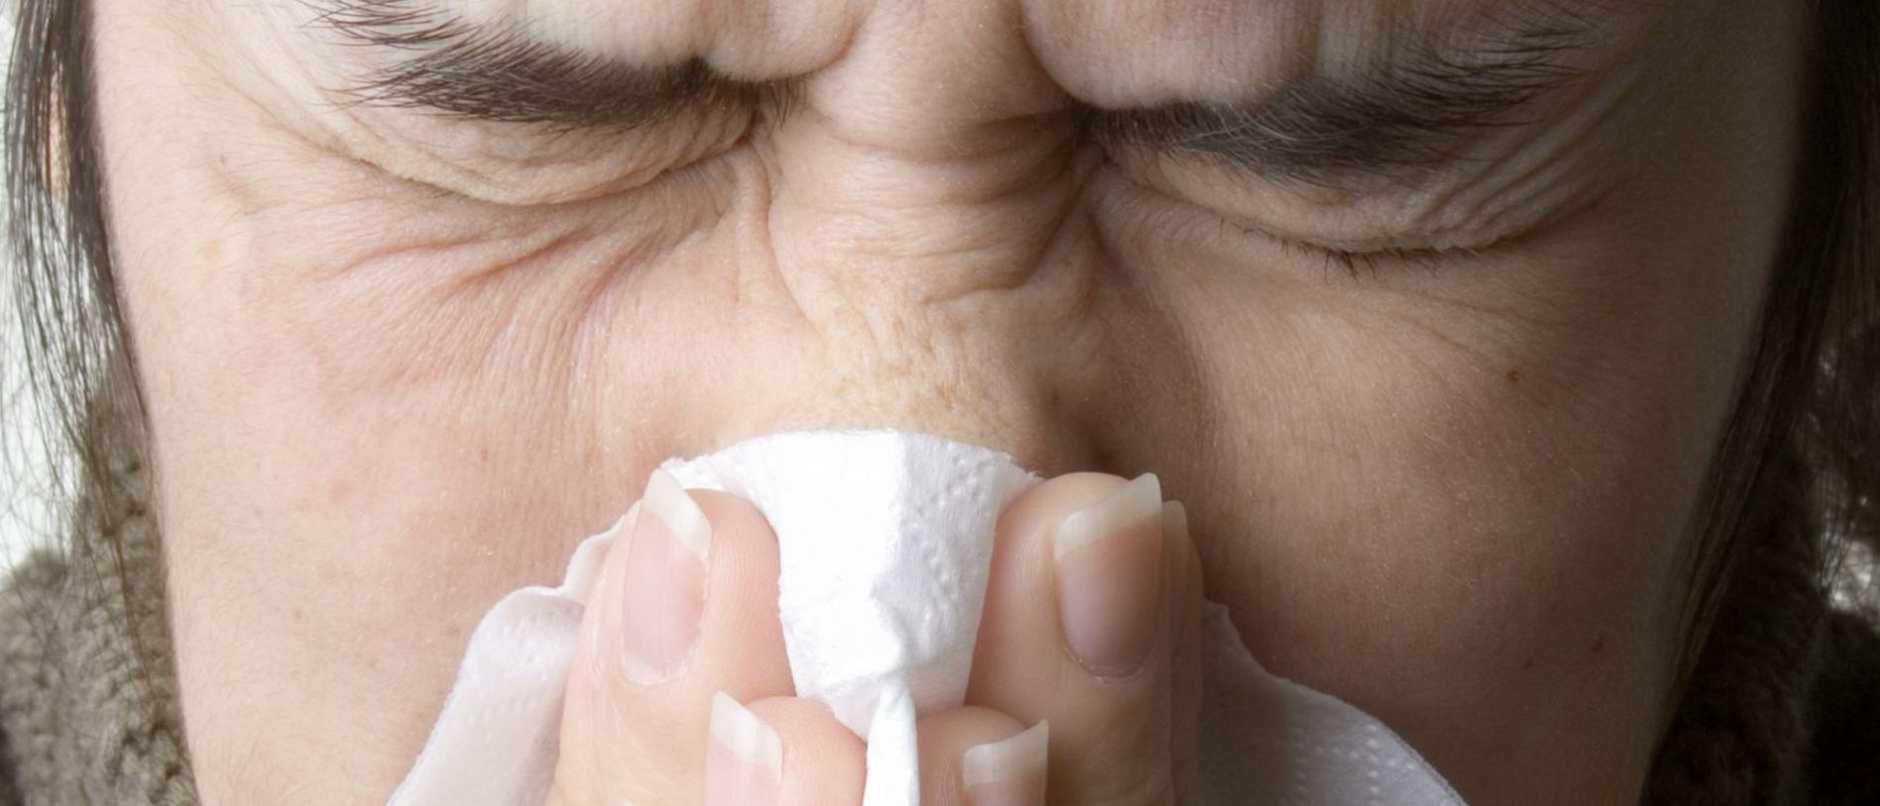 THERE has been a large drop in the number of influenza cases in Toowoomba and the Darling Downs so far this year.